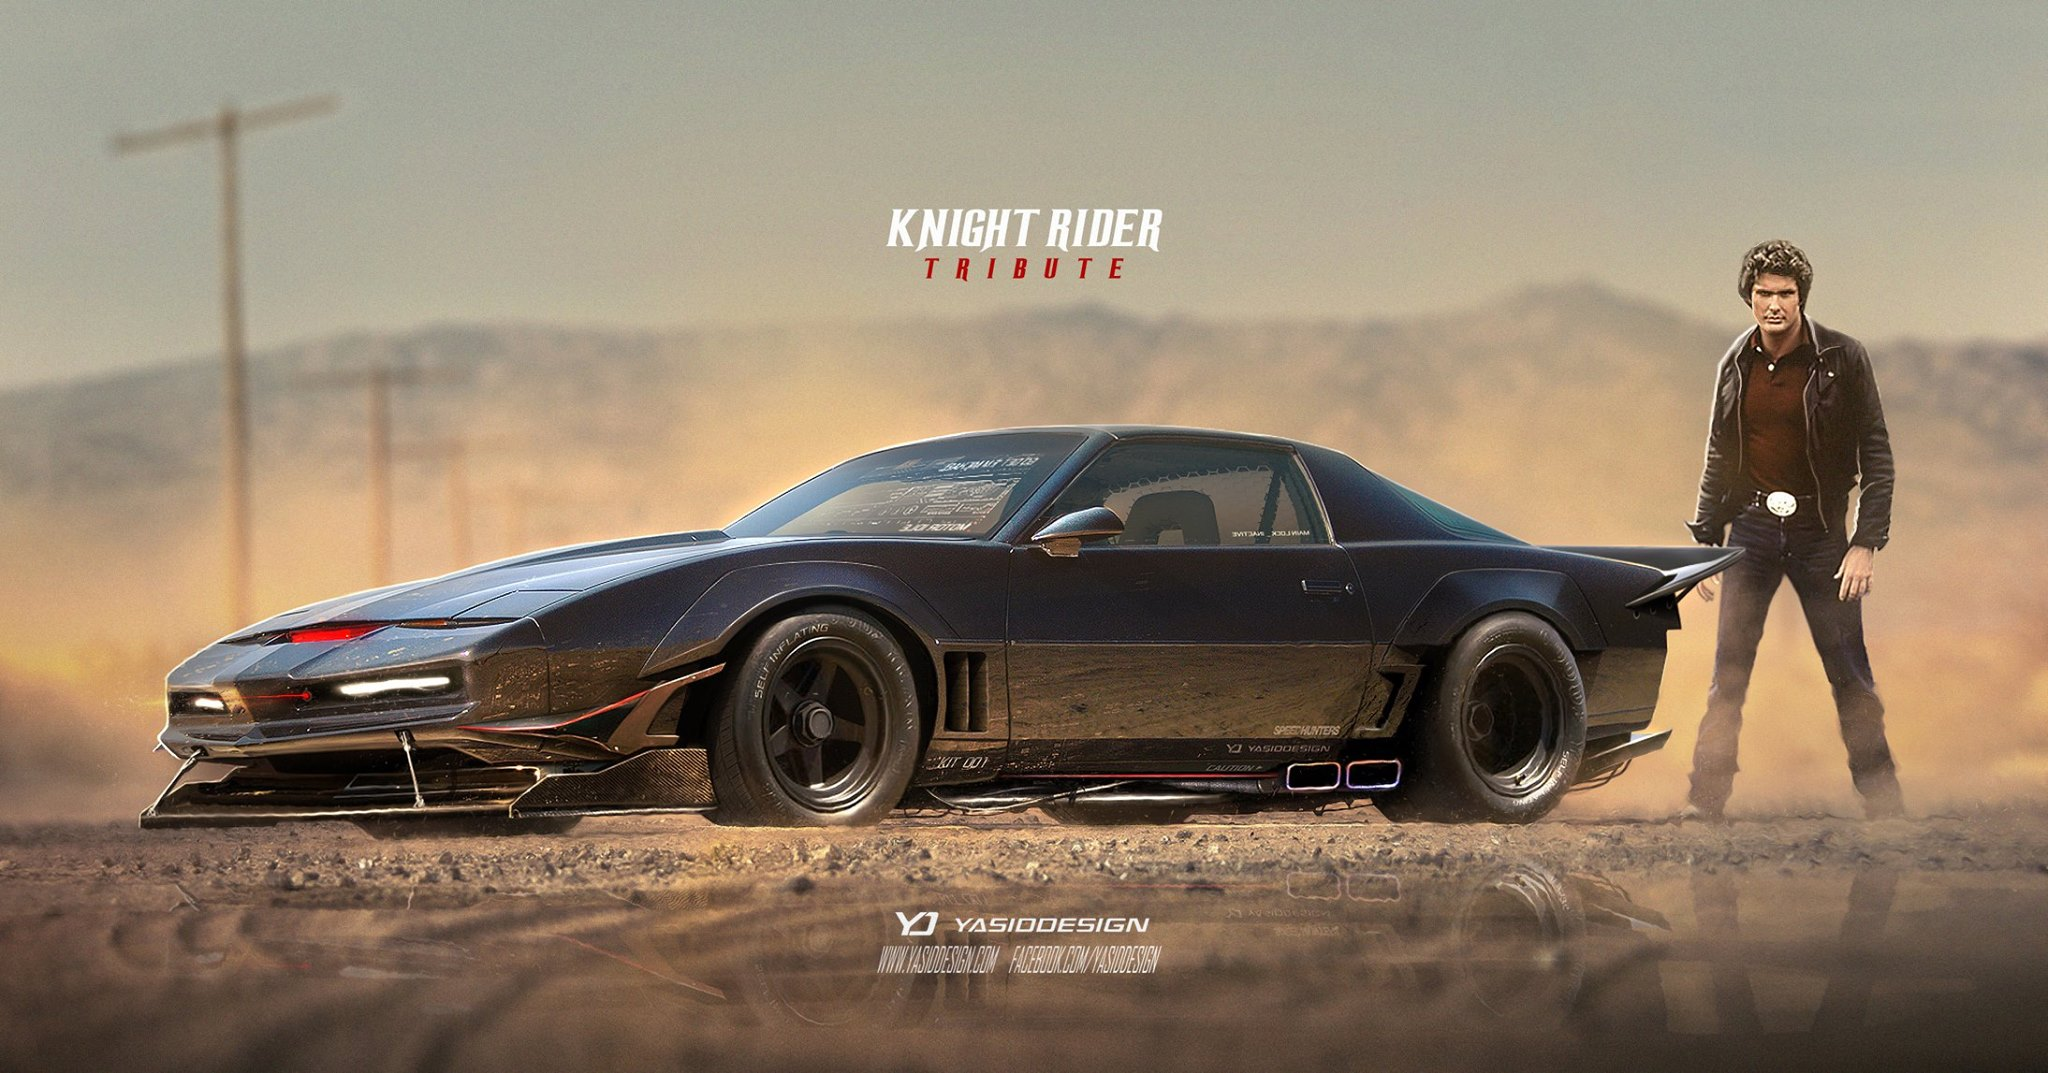 Knight Rider Kitt Car Gets A Futuristic Makeover With